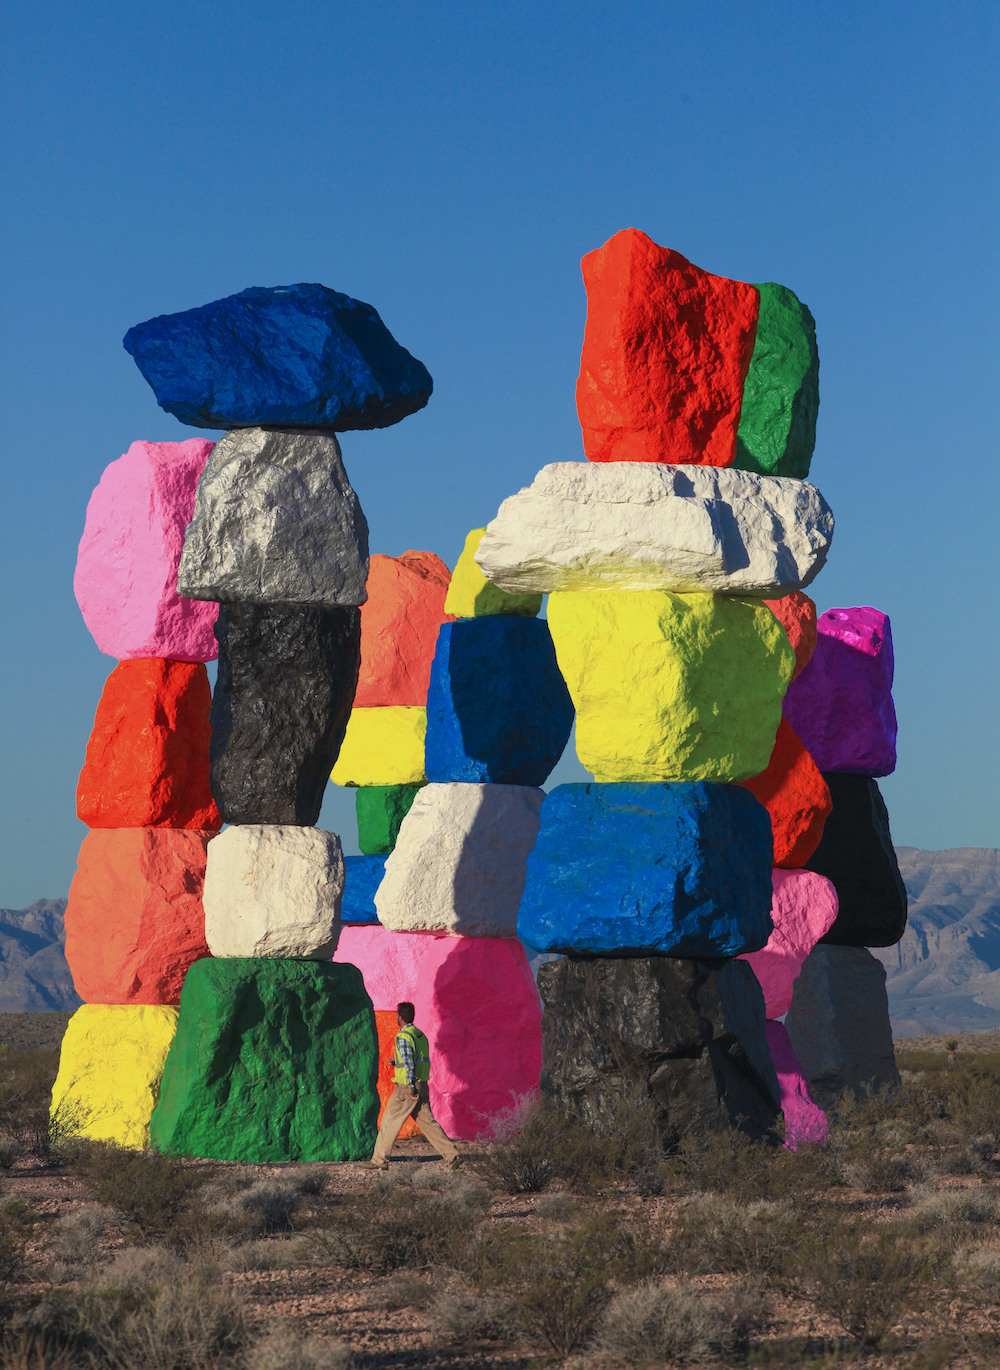 Ugo Rondinone, Seven Magic Mountains, Colored Rocks, Desert, Sculpture